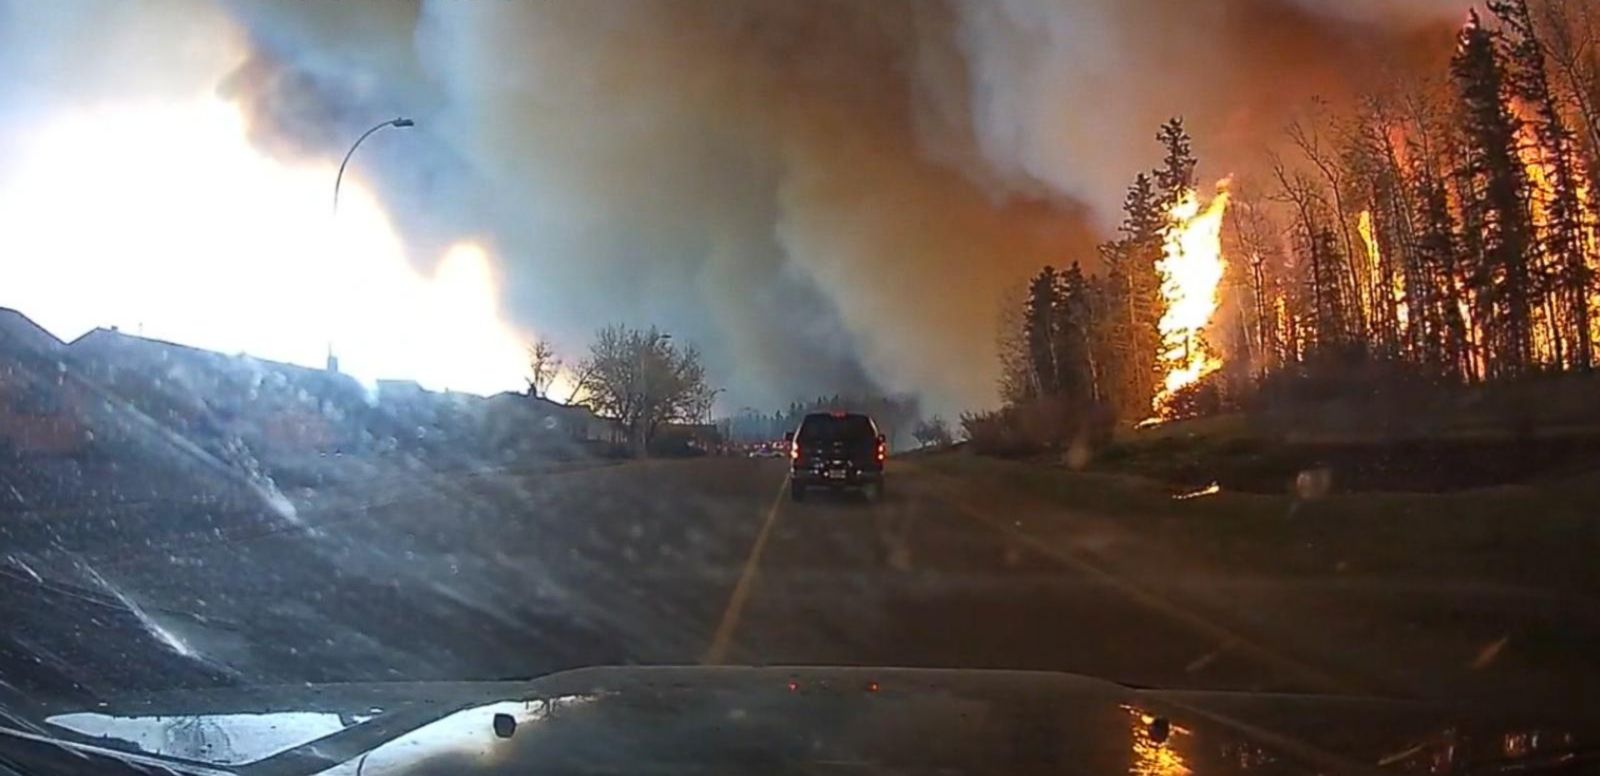 VIDEO: Fort McMurray Continues to Burn